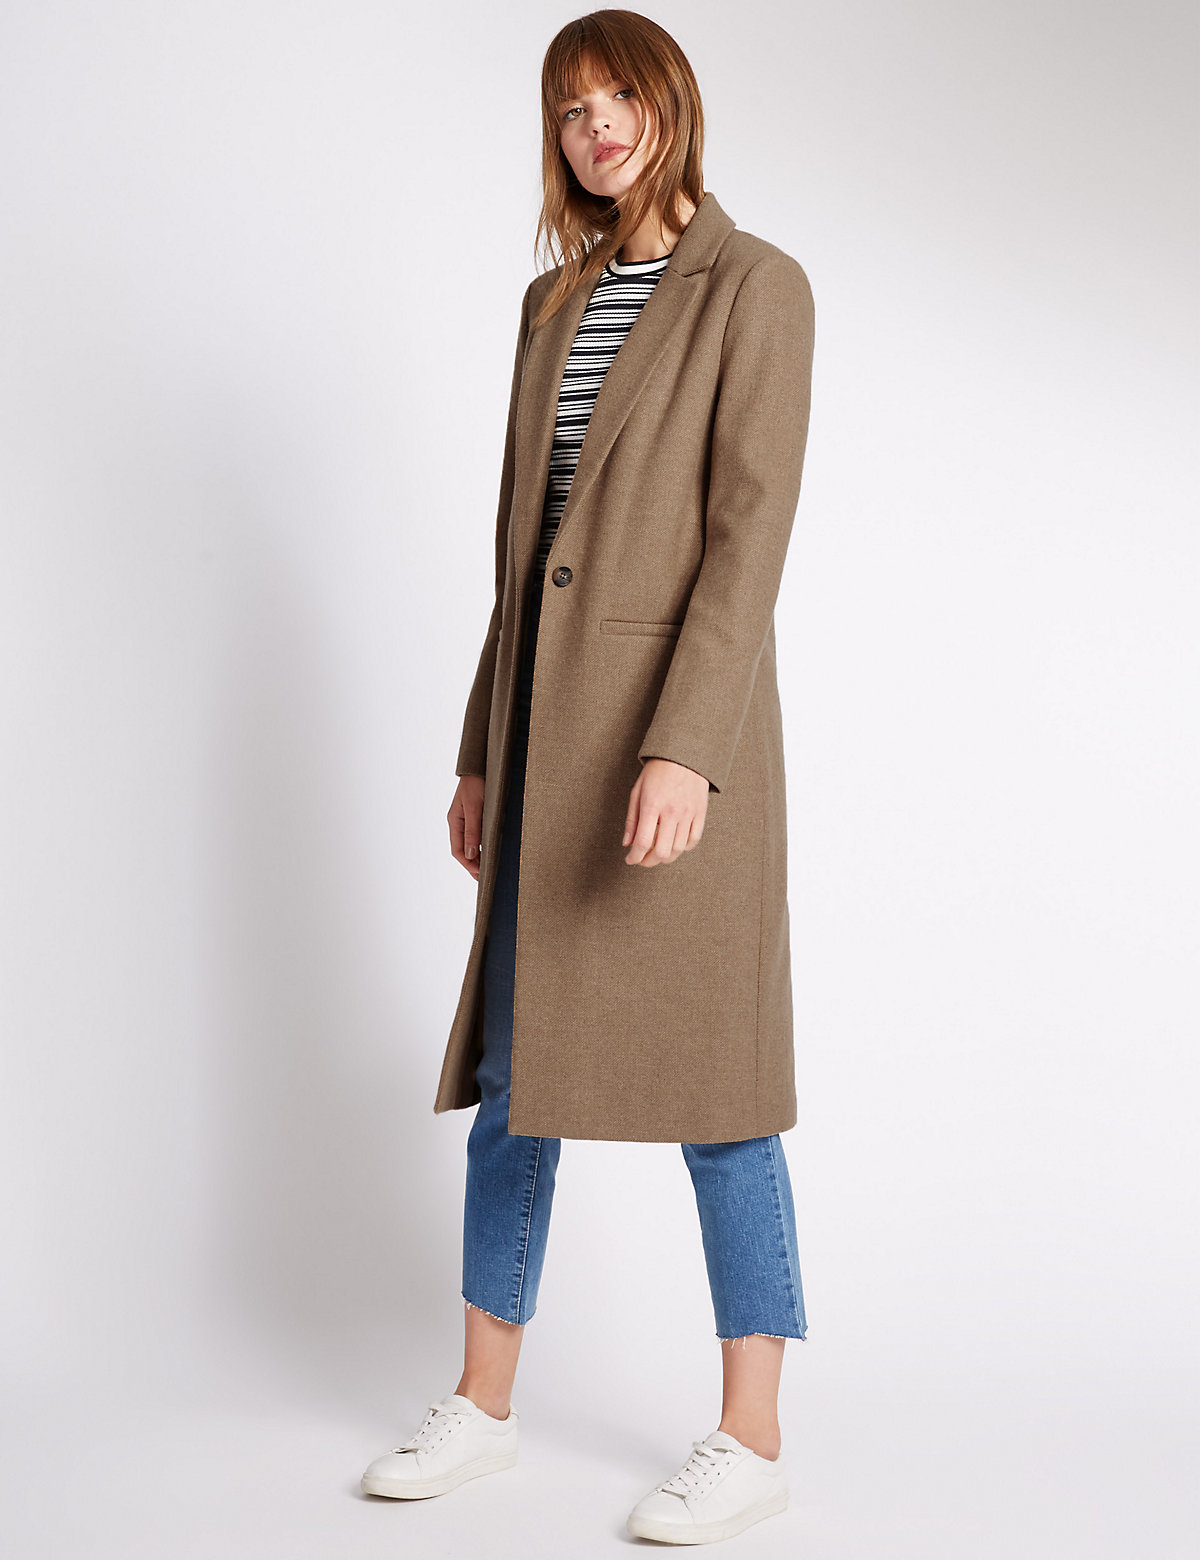 Limited Edition Collared Neck Coat with Wool